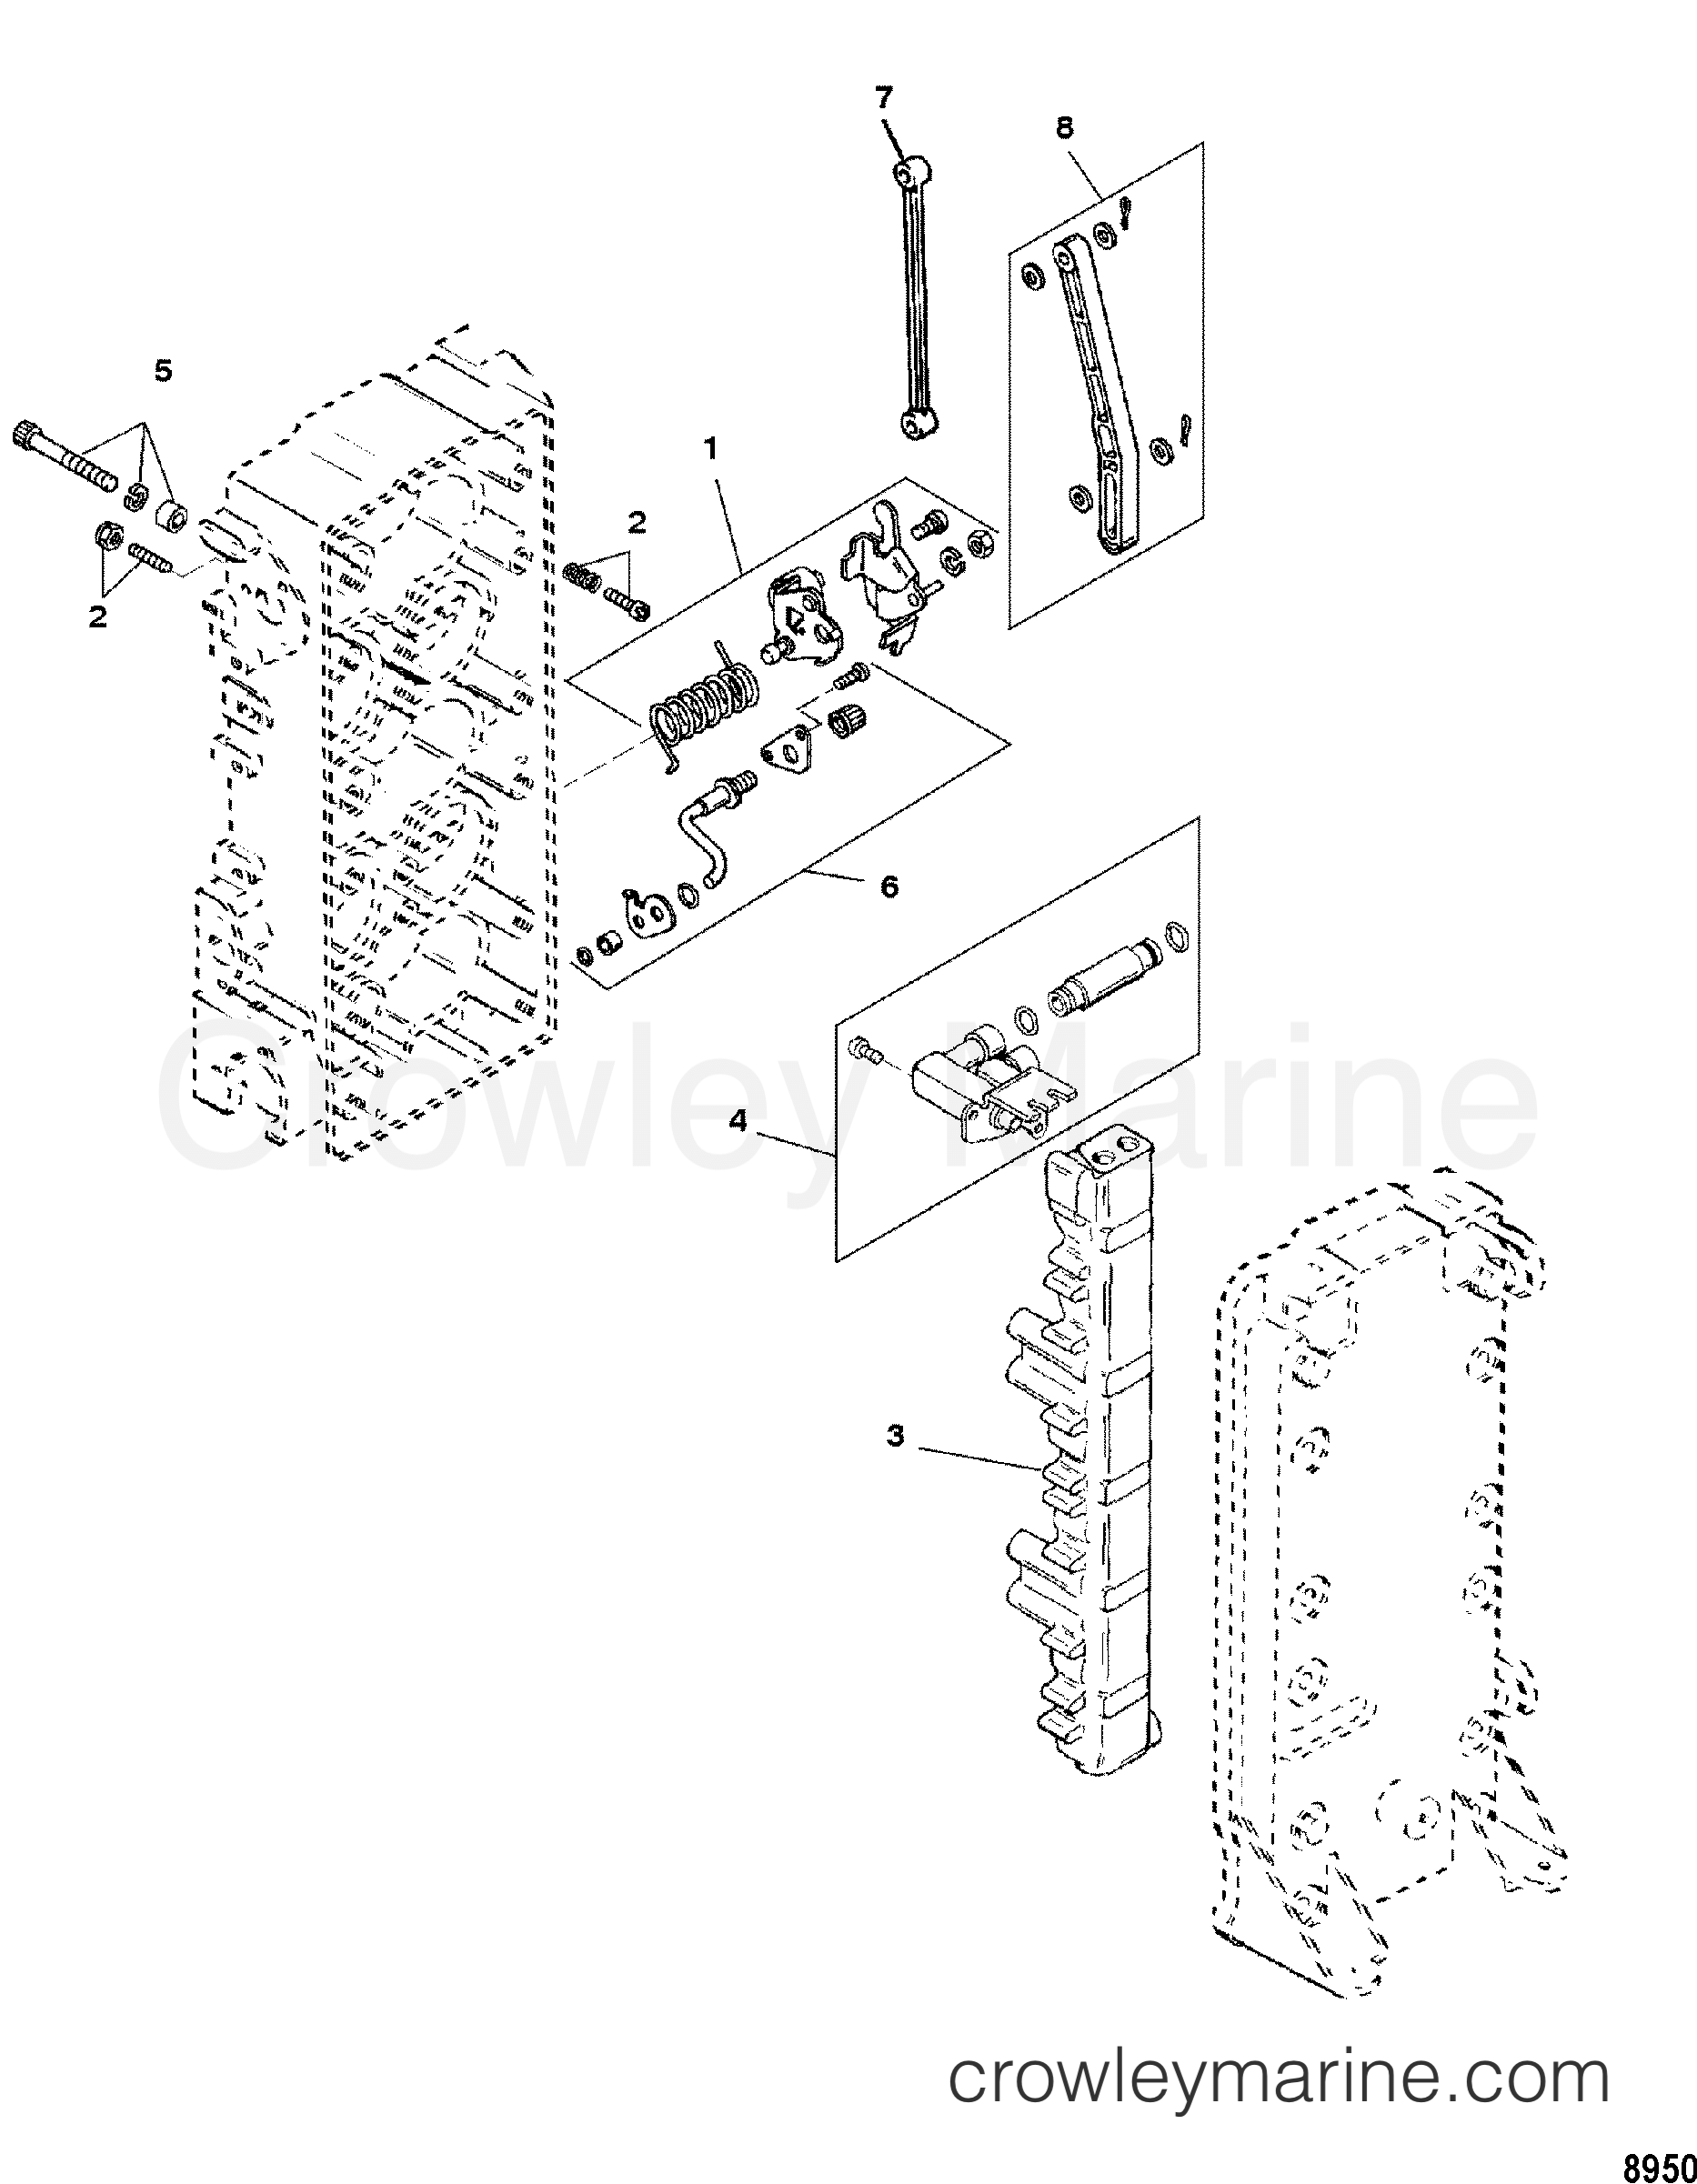 1997 Mercury Race Outboard 150 [PROMAX] - 1915313TH FUEL MANAGEMENT SYSTEM(0G366999 AND BELOW) section